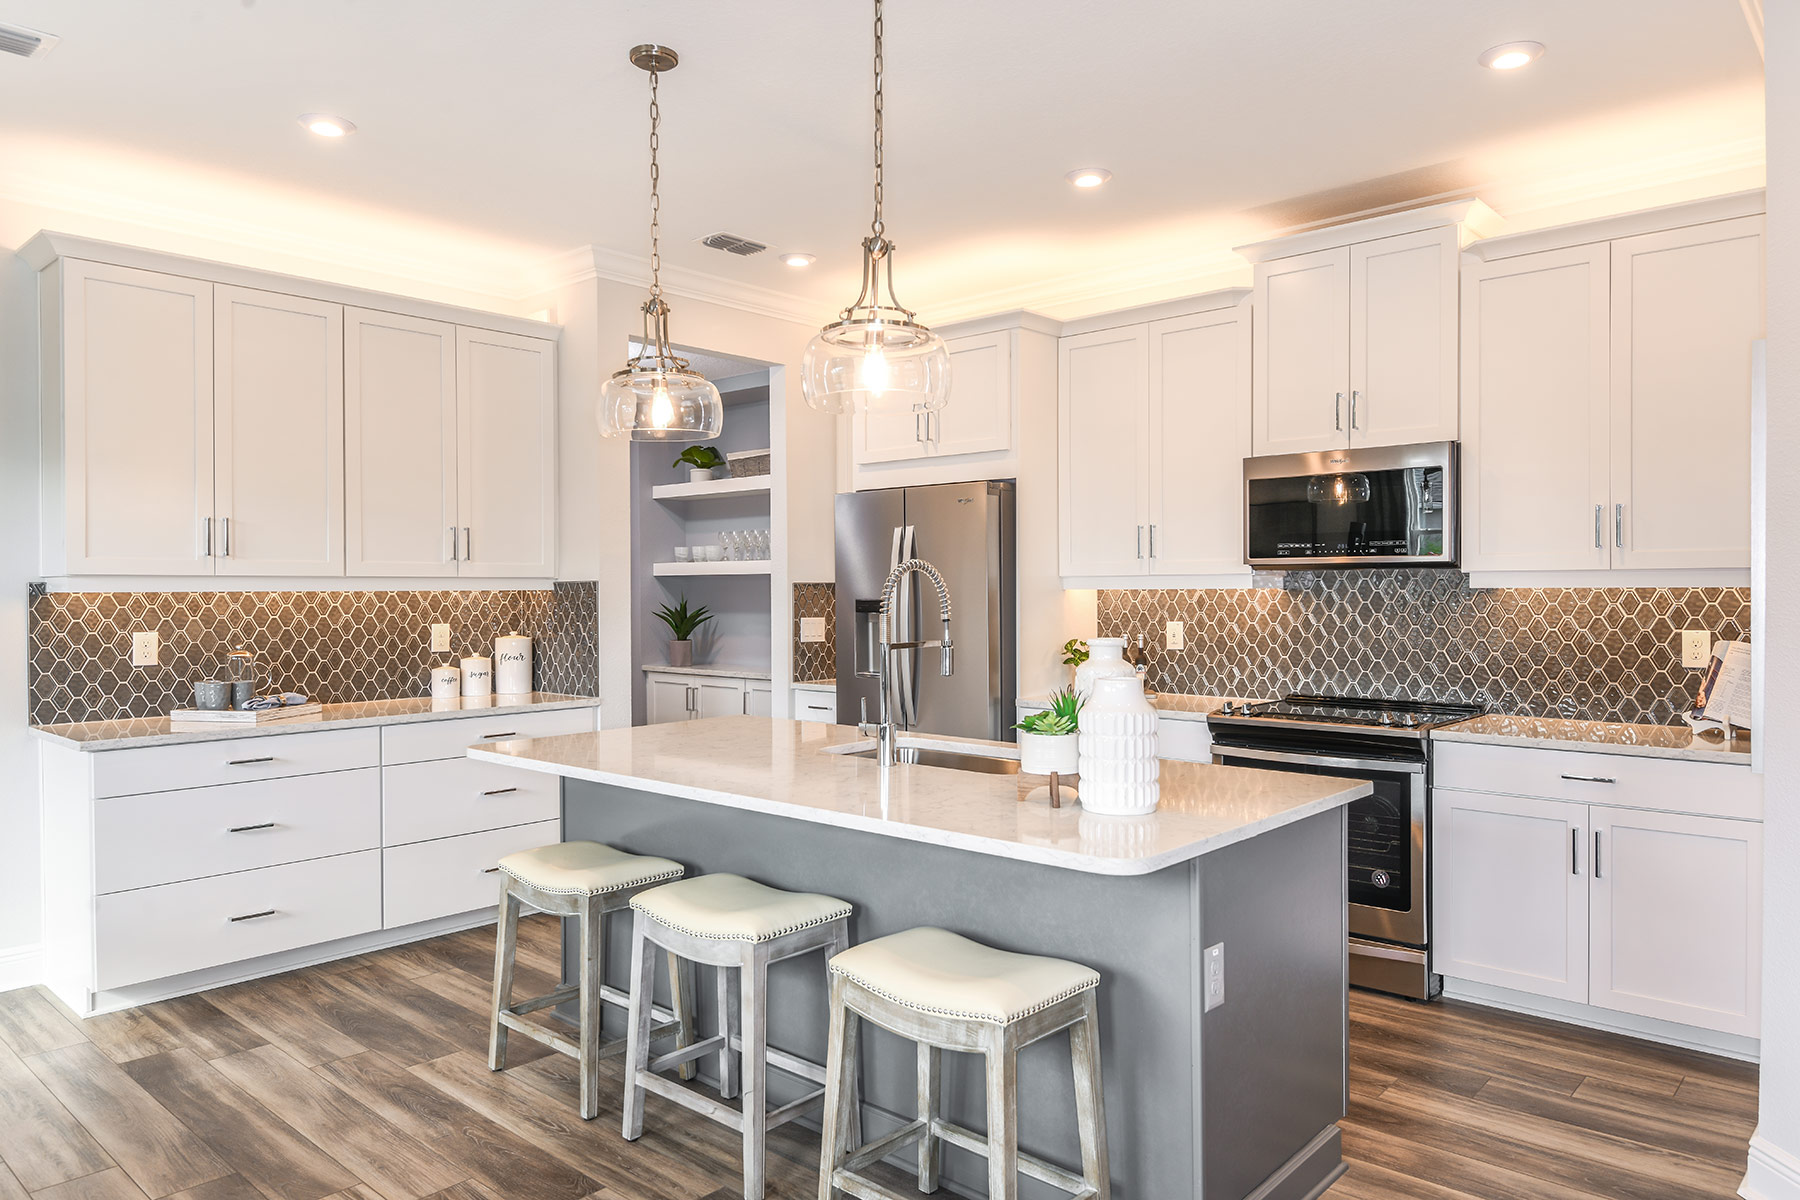 Venice Plan Kitchen at Parkview at Long Lake Ranch in Lutz Florida by Mattamy Homes